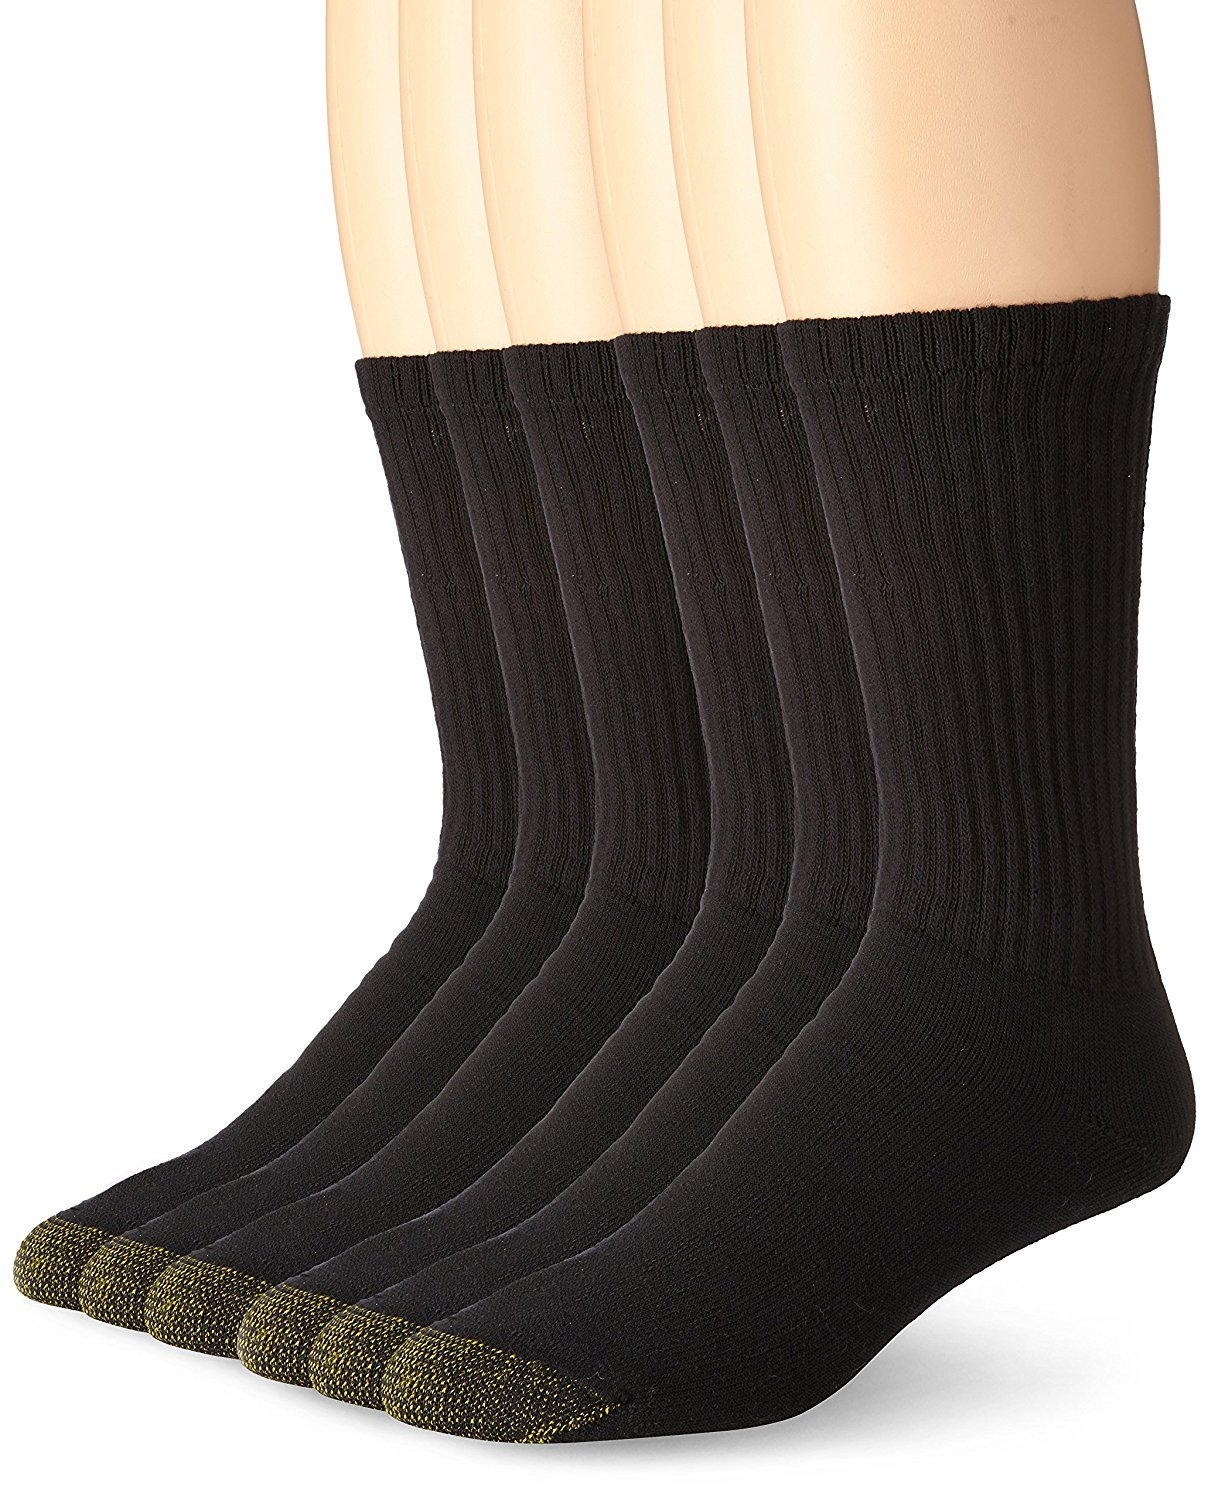 Gold Toe Men's Cotton Crew Athletic Sock 6-Pack (3 PK (18 PAIR) 10-13, Black)